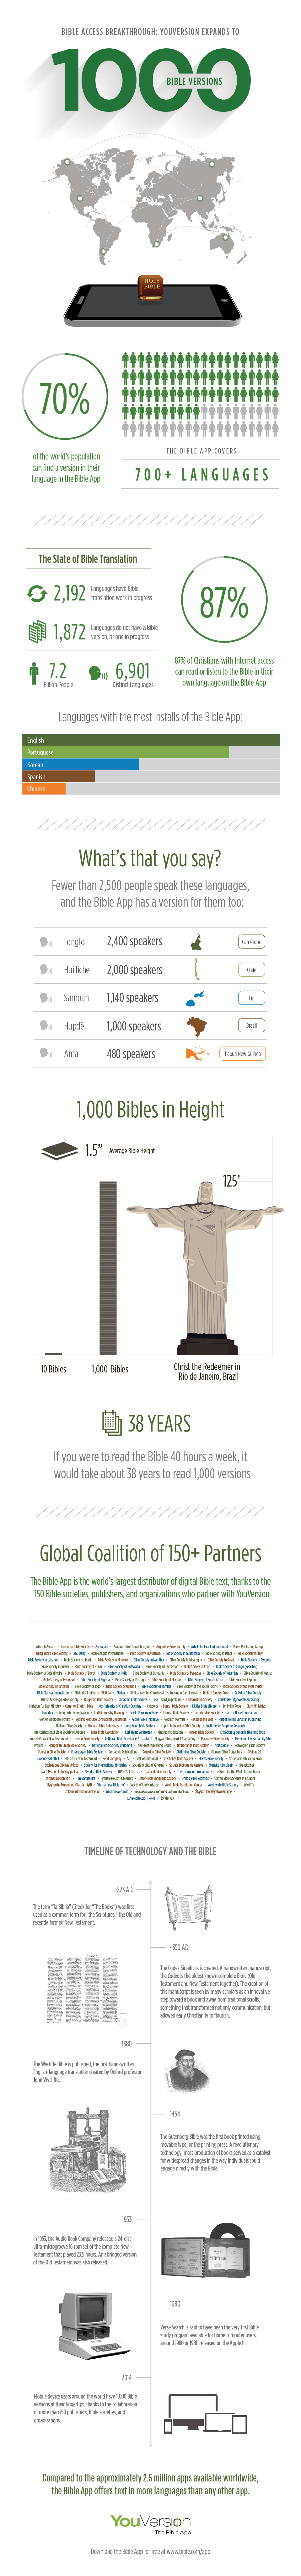 See what 1000 Bible versions could mean (infographic)